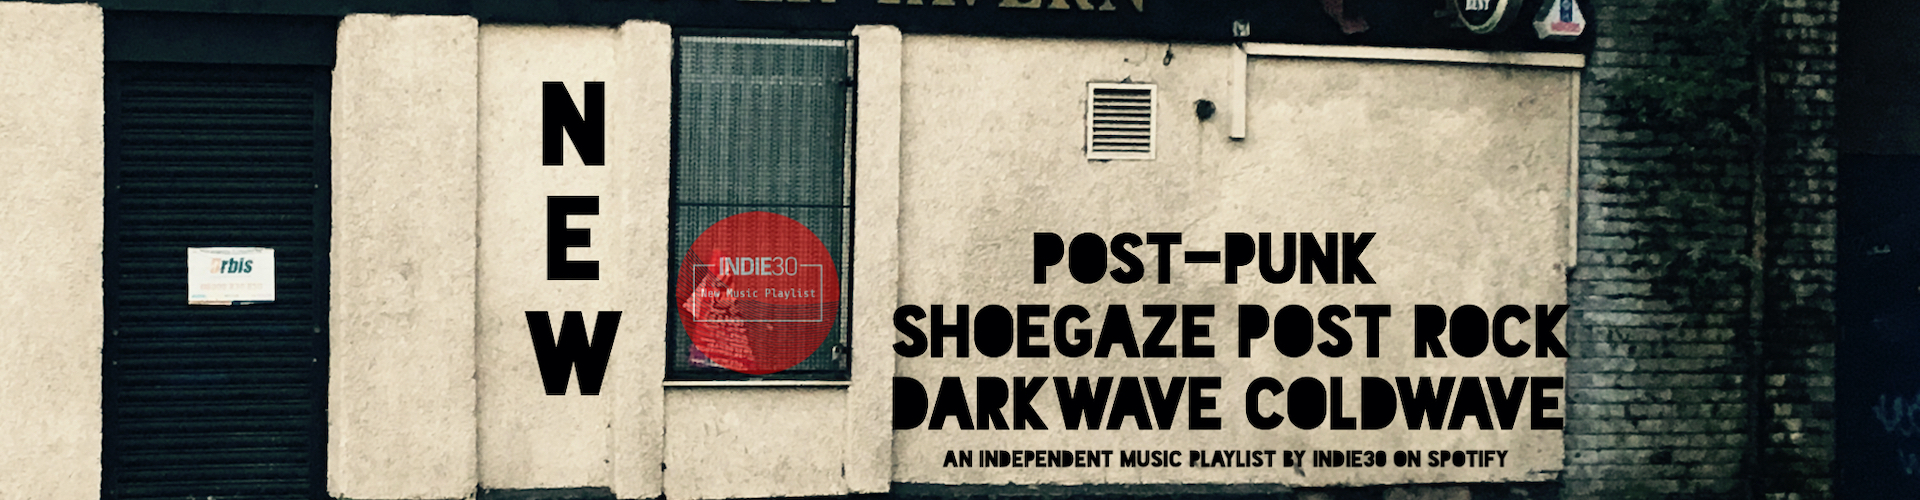 New-Post-Punk-DCW-Shoe-Post-Rock-Banner